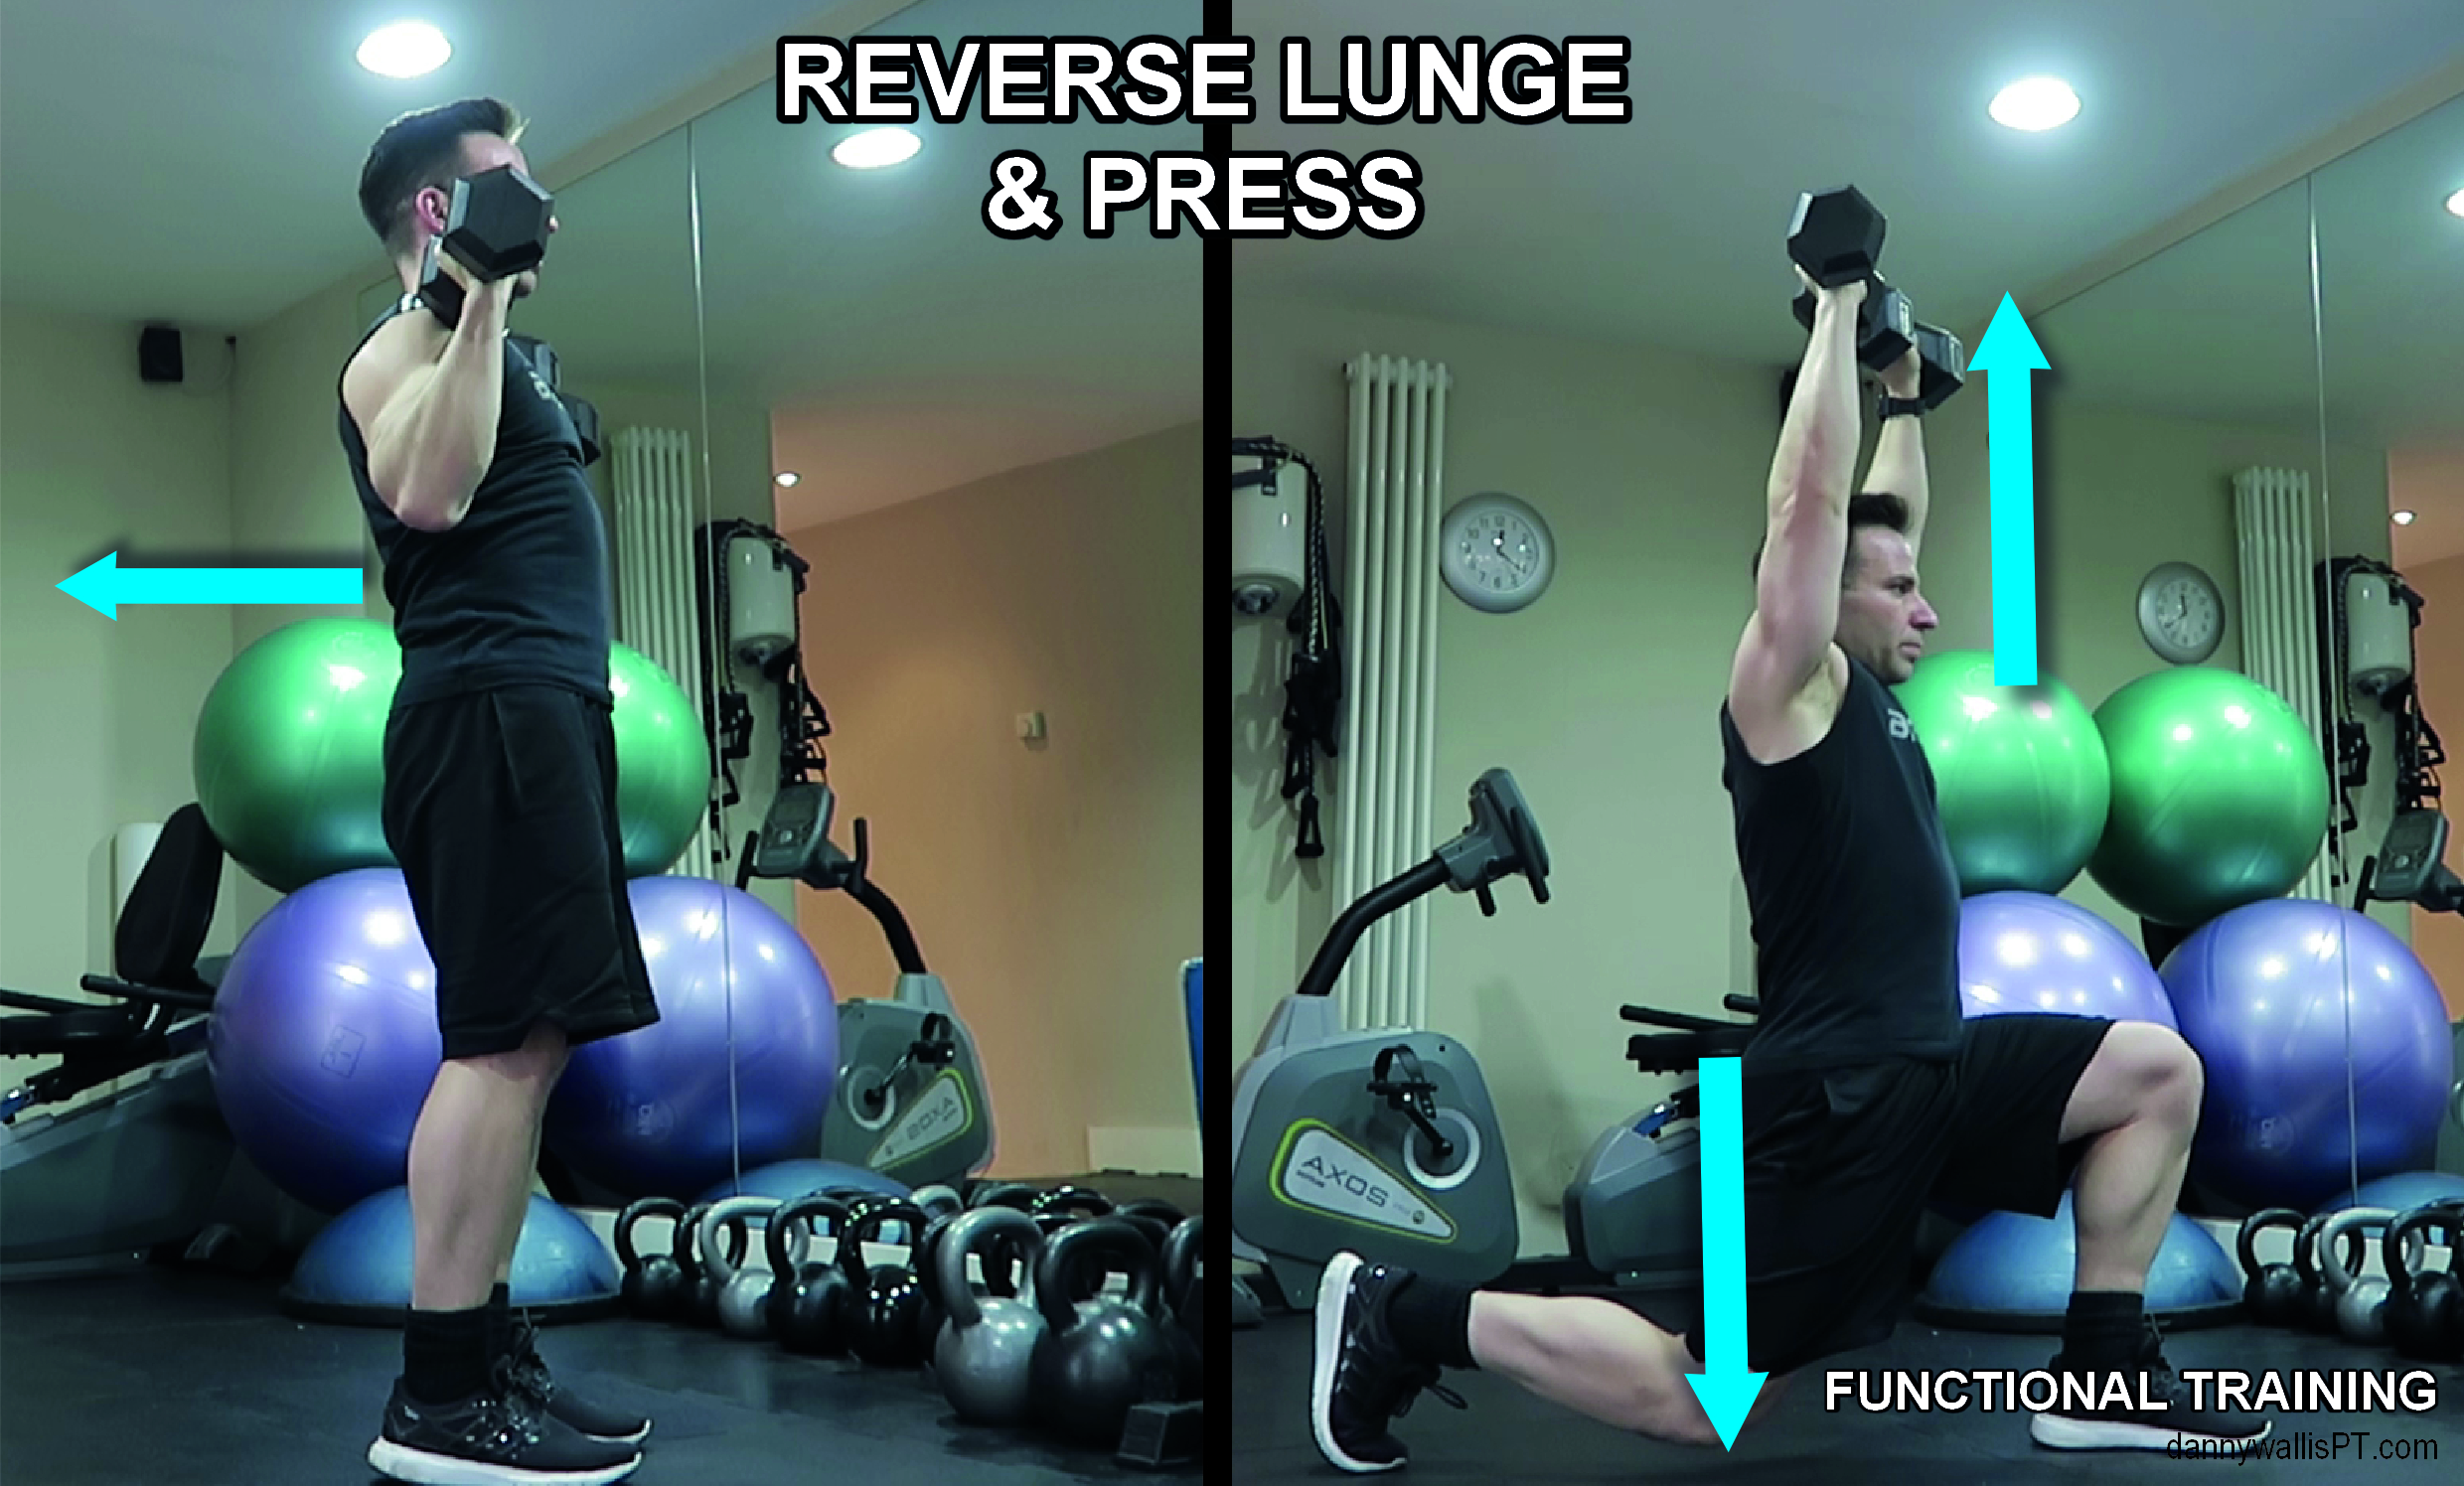 Reverse Lunge to press Functional Training Blog post